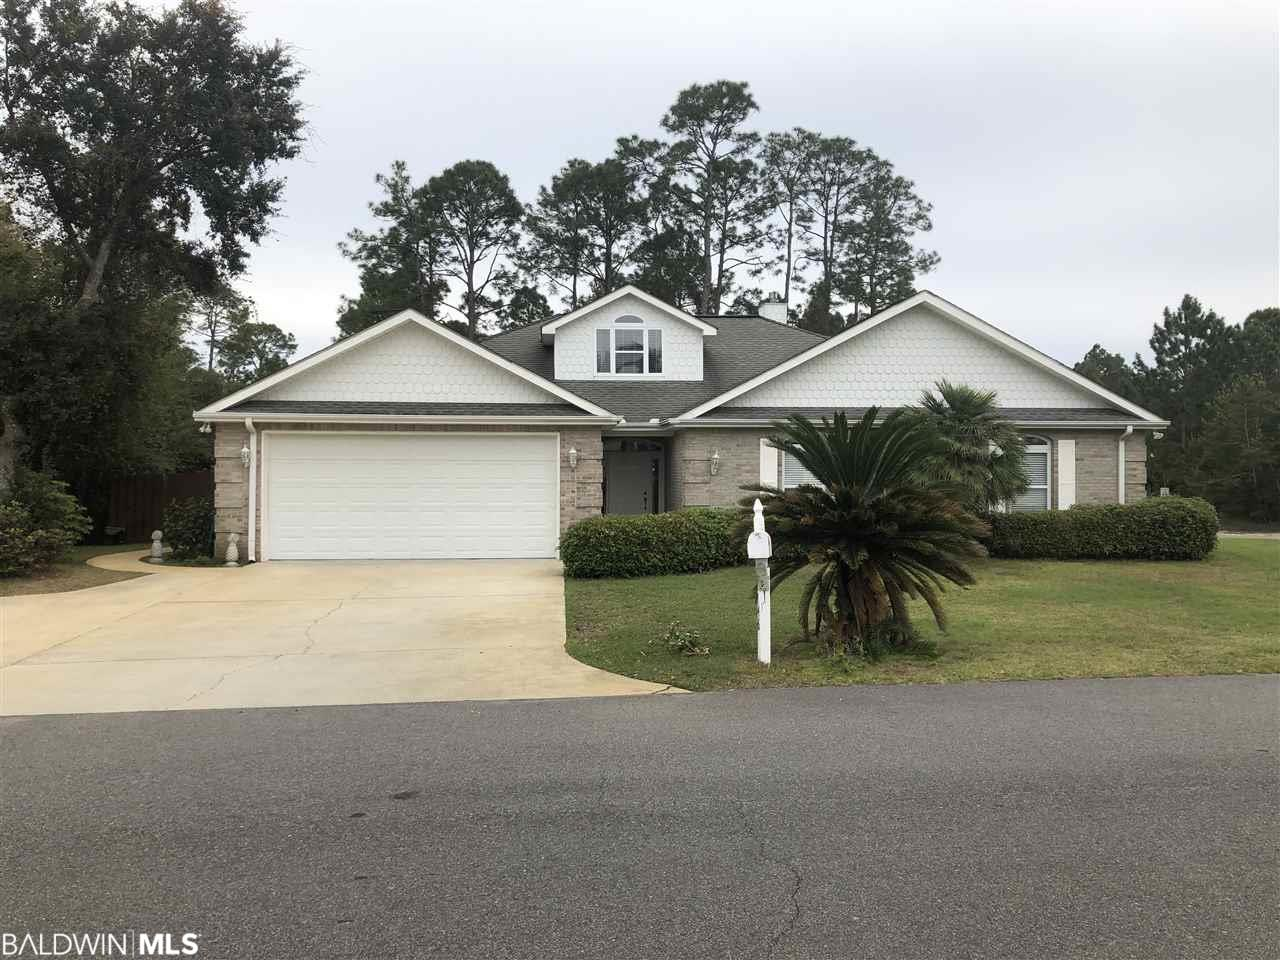 26646 Harbor Ridge Dr, Orange Beach, AL 36561